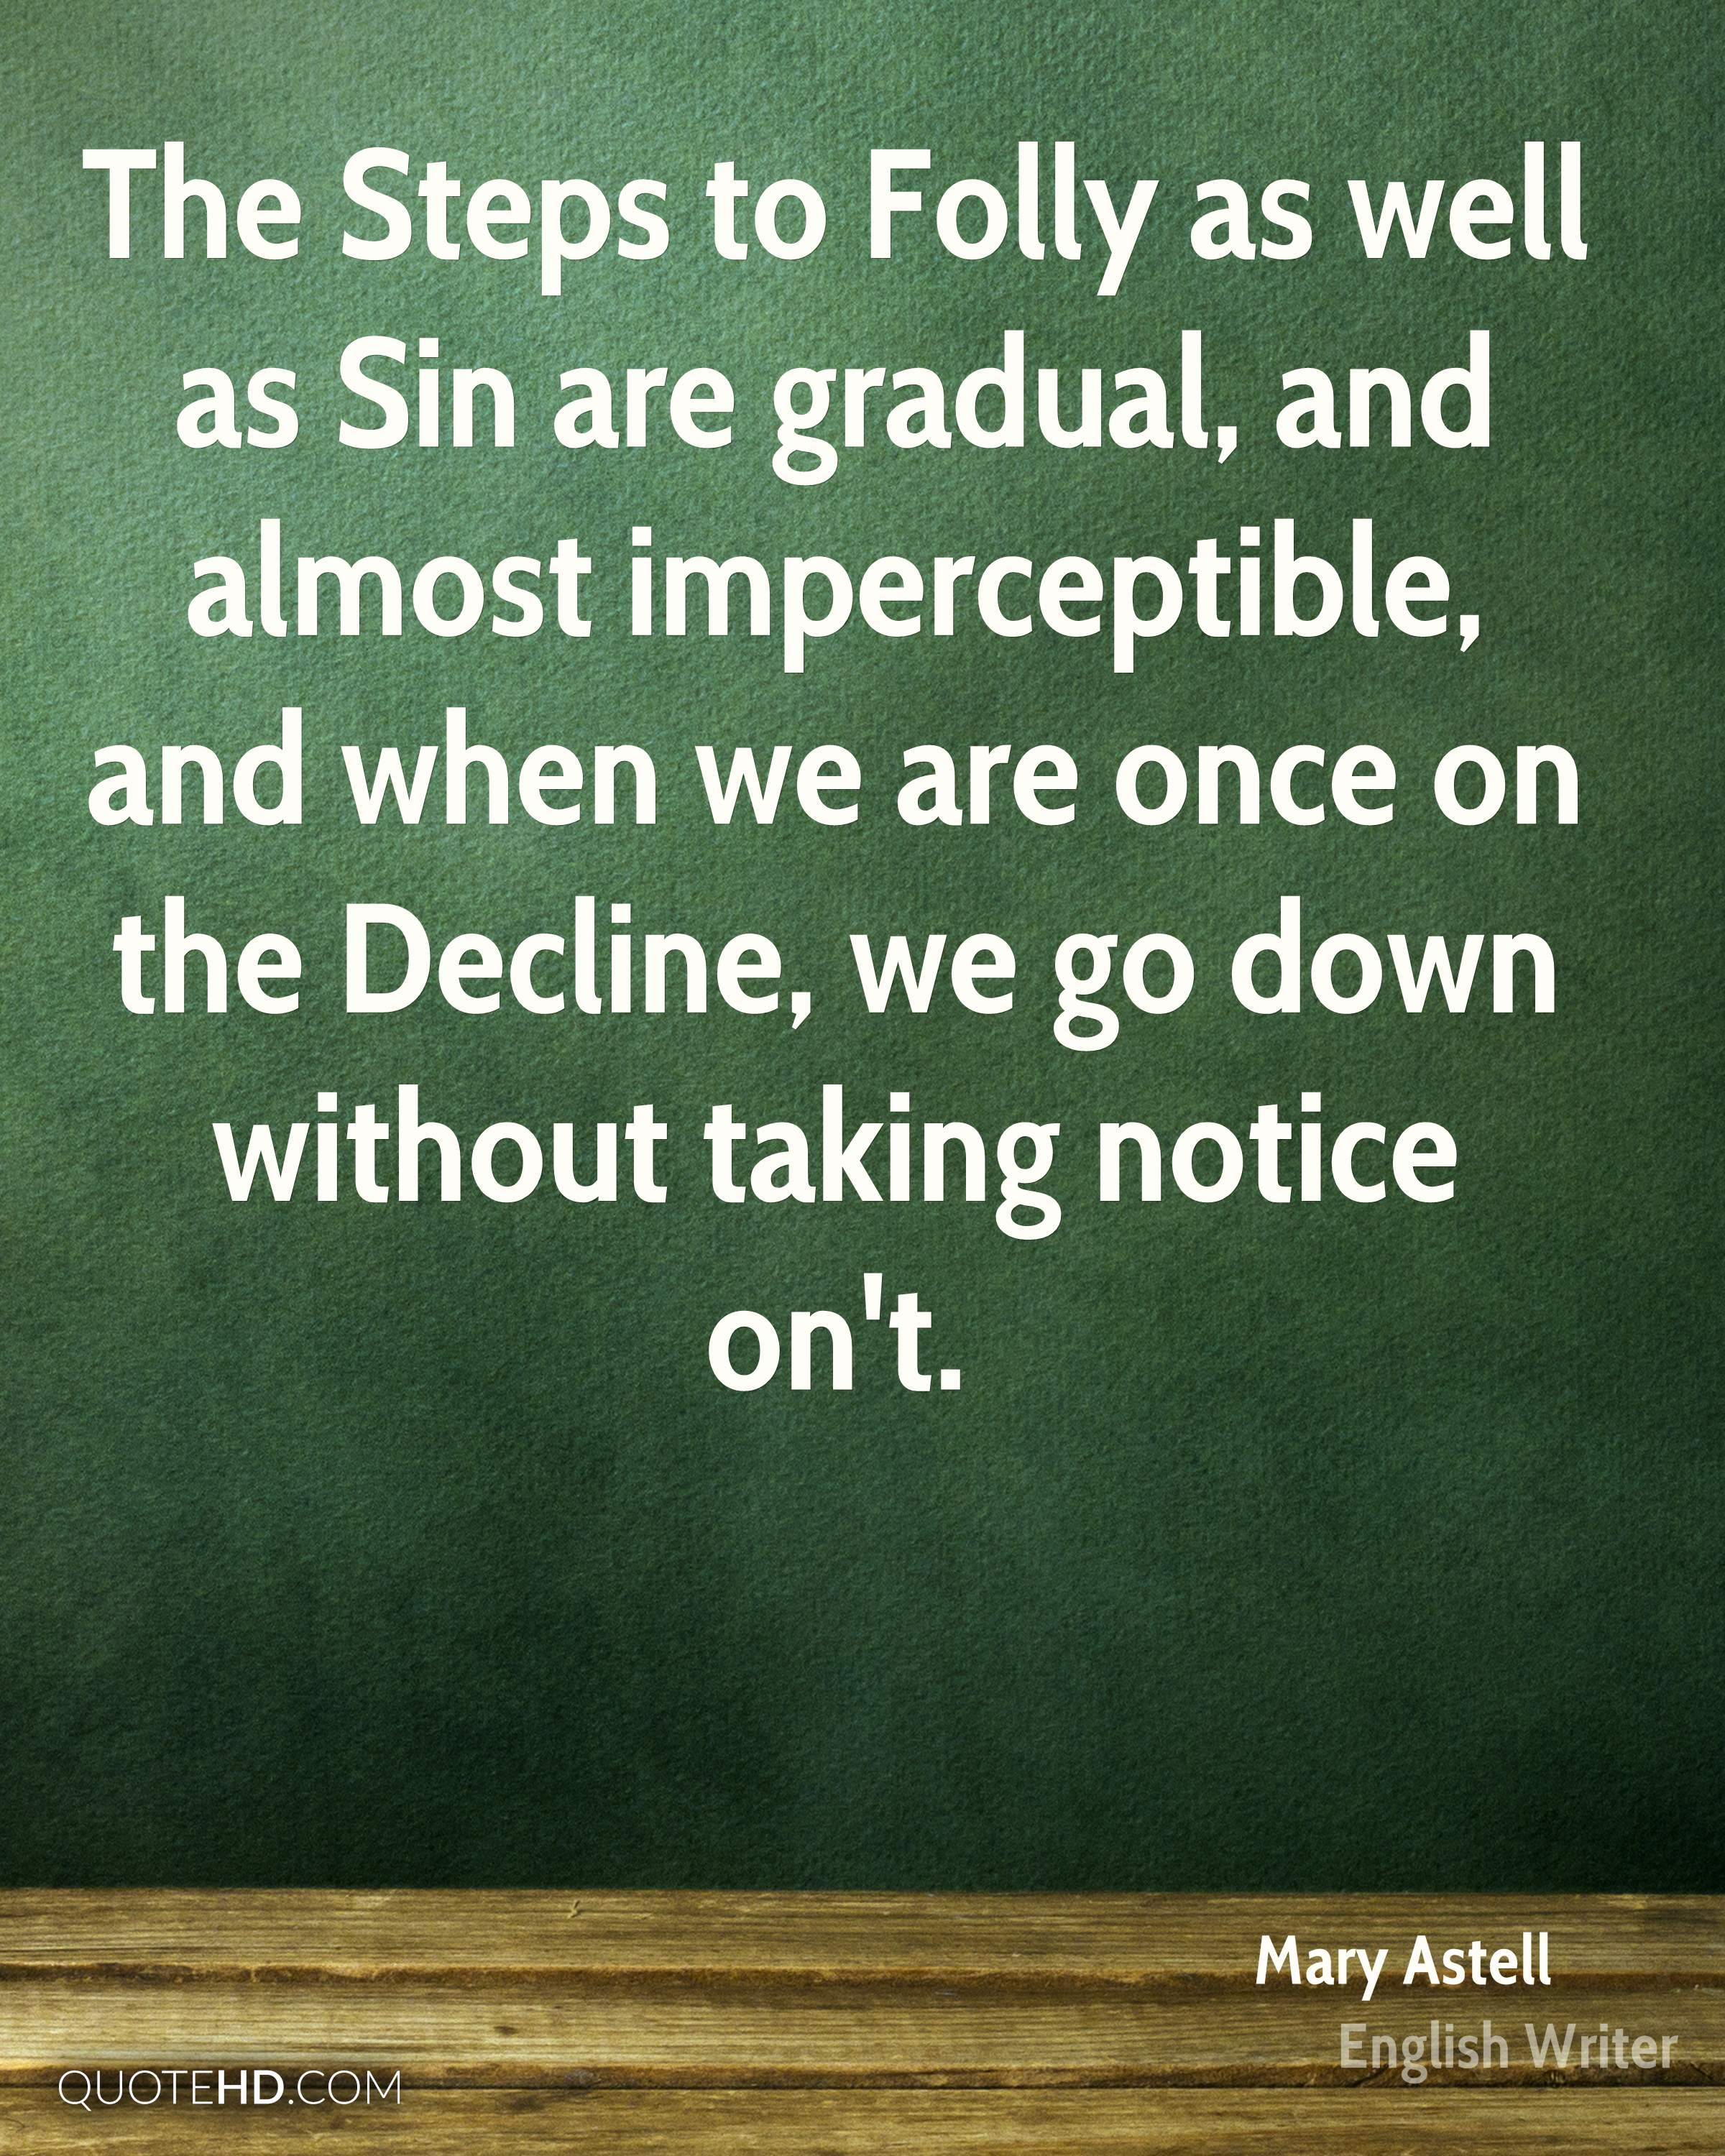 The Steps to Folly as well as Sin are gradual, and almost imperceptible, and when we are once on the Decline, we go down without taking notice on't.